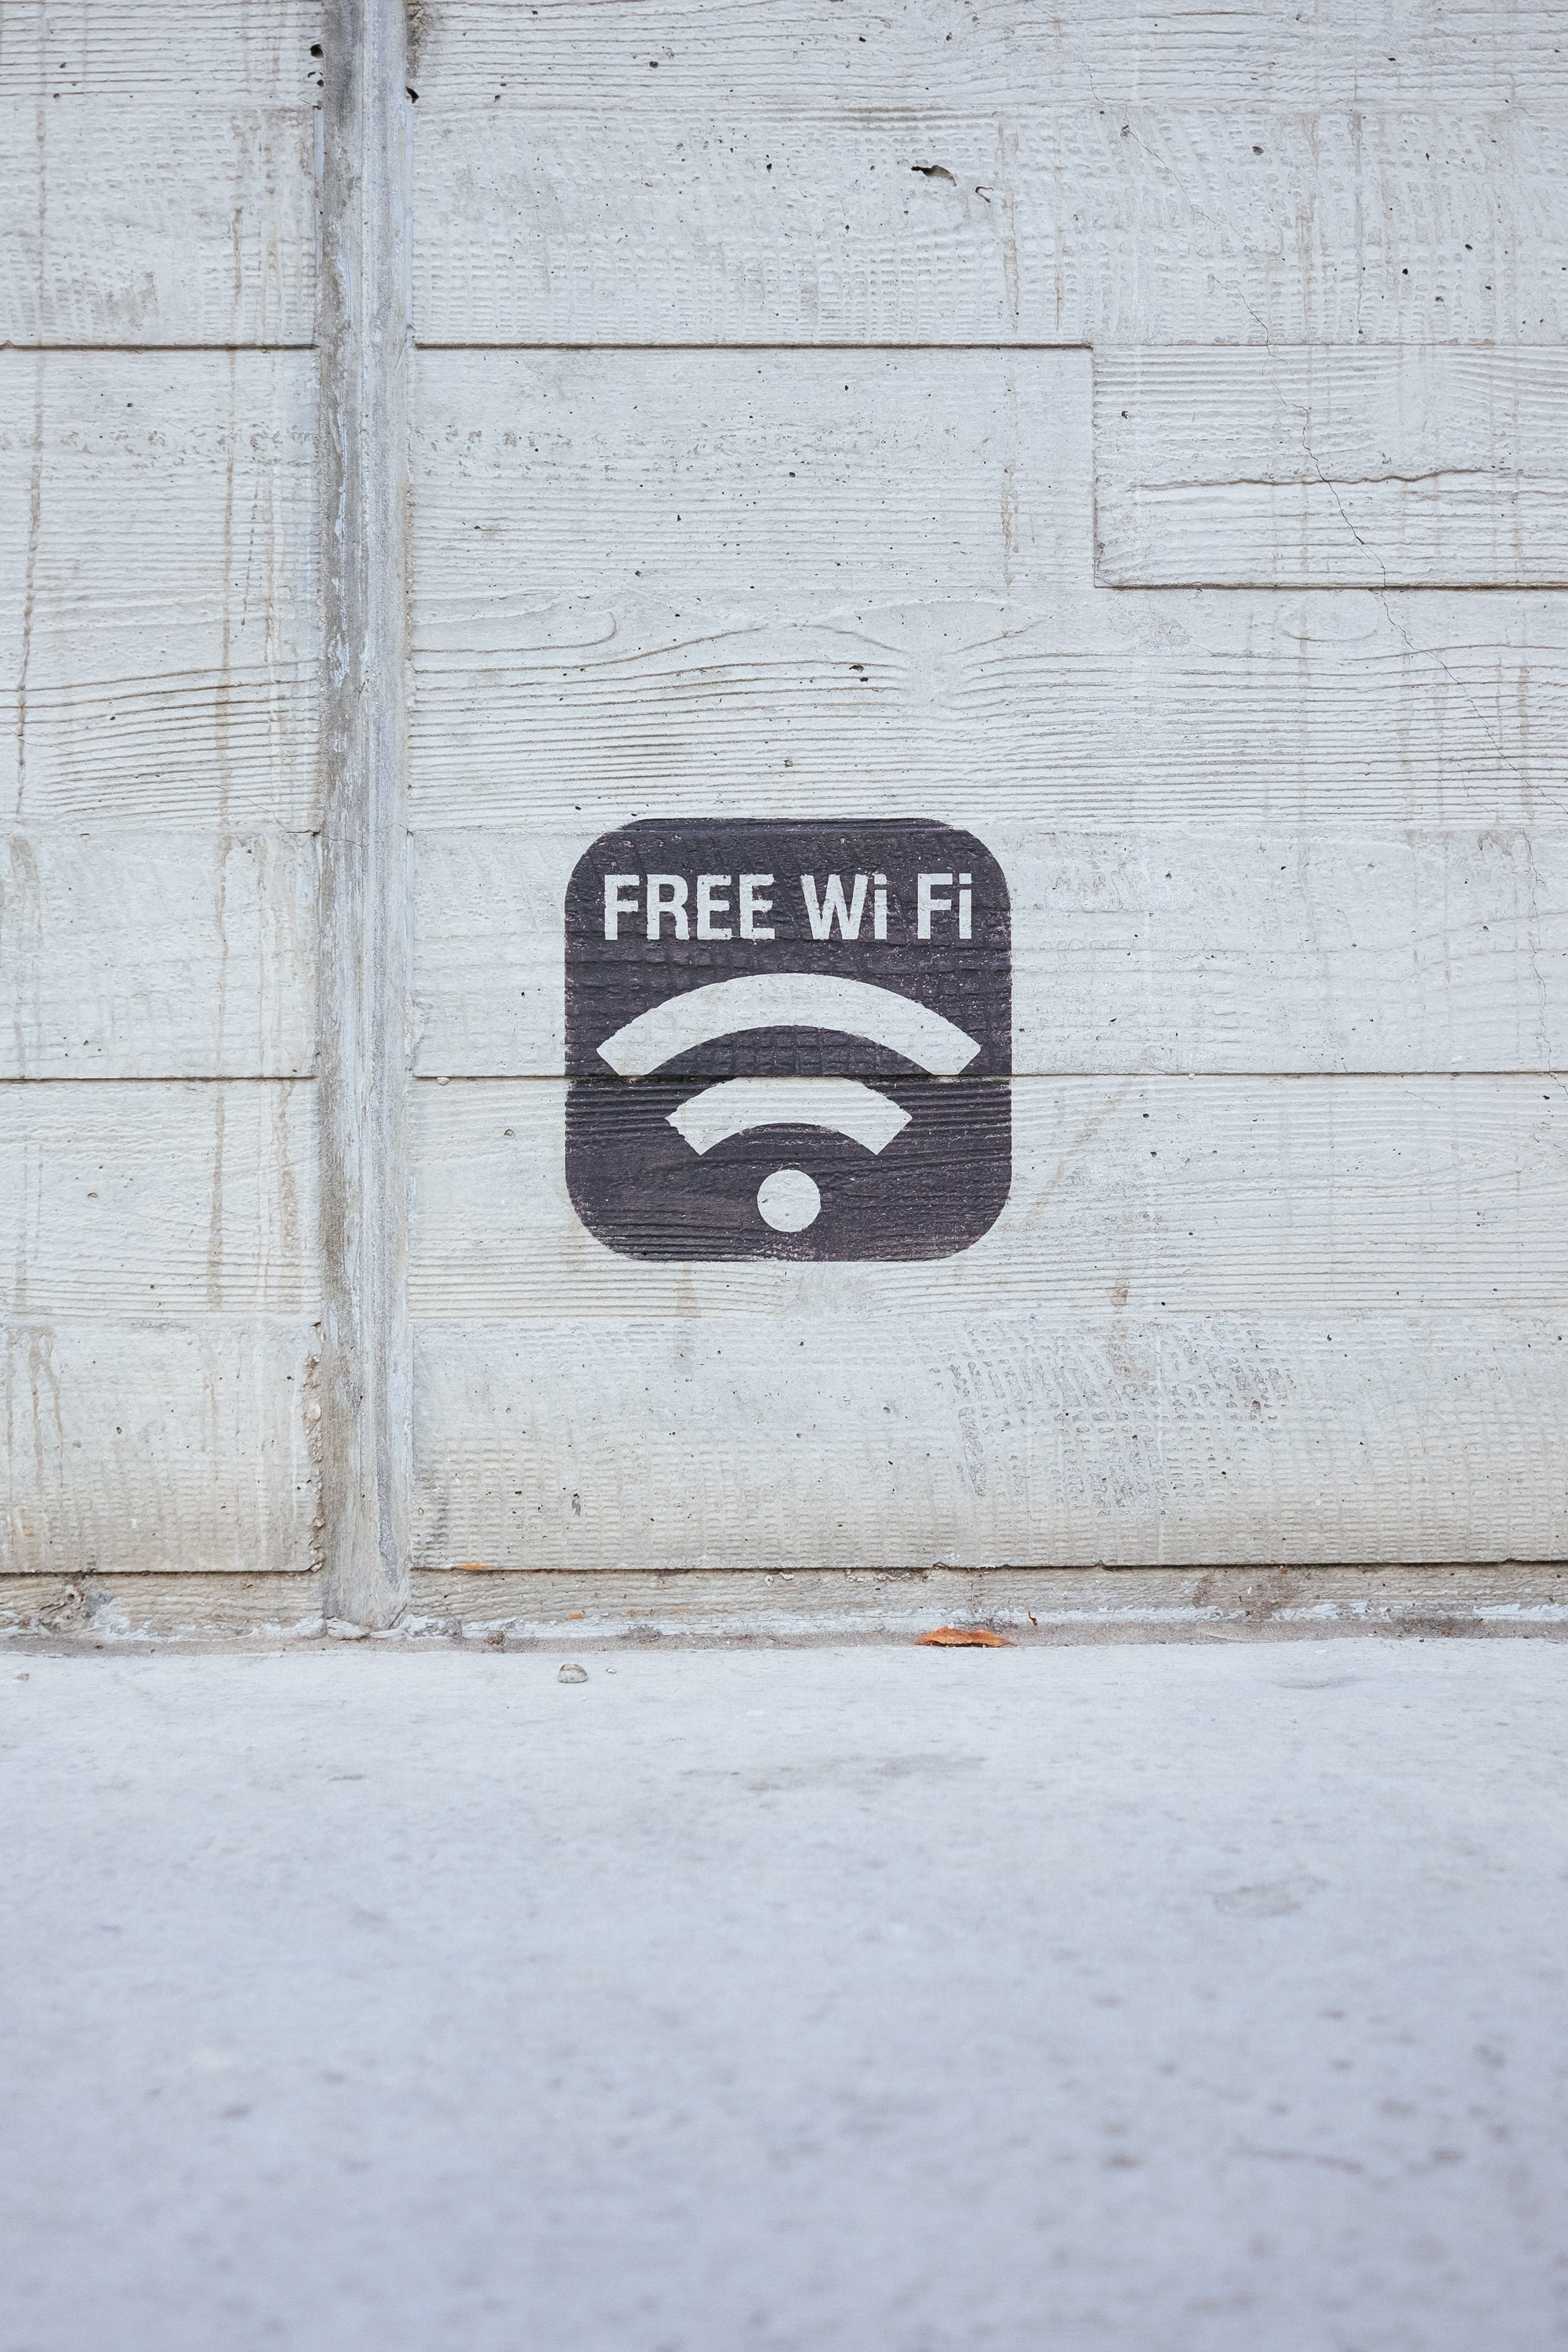 At the ROW DTLA — FREE Wi Fi — for all your screen needs.